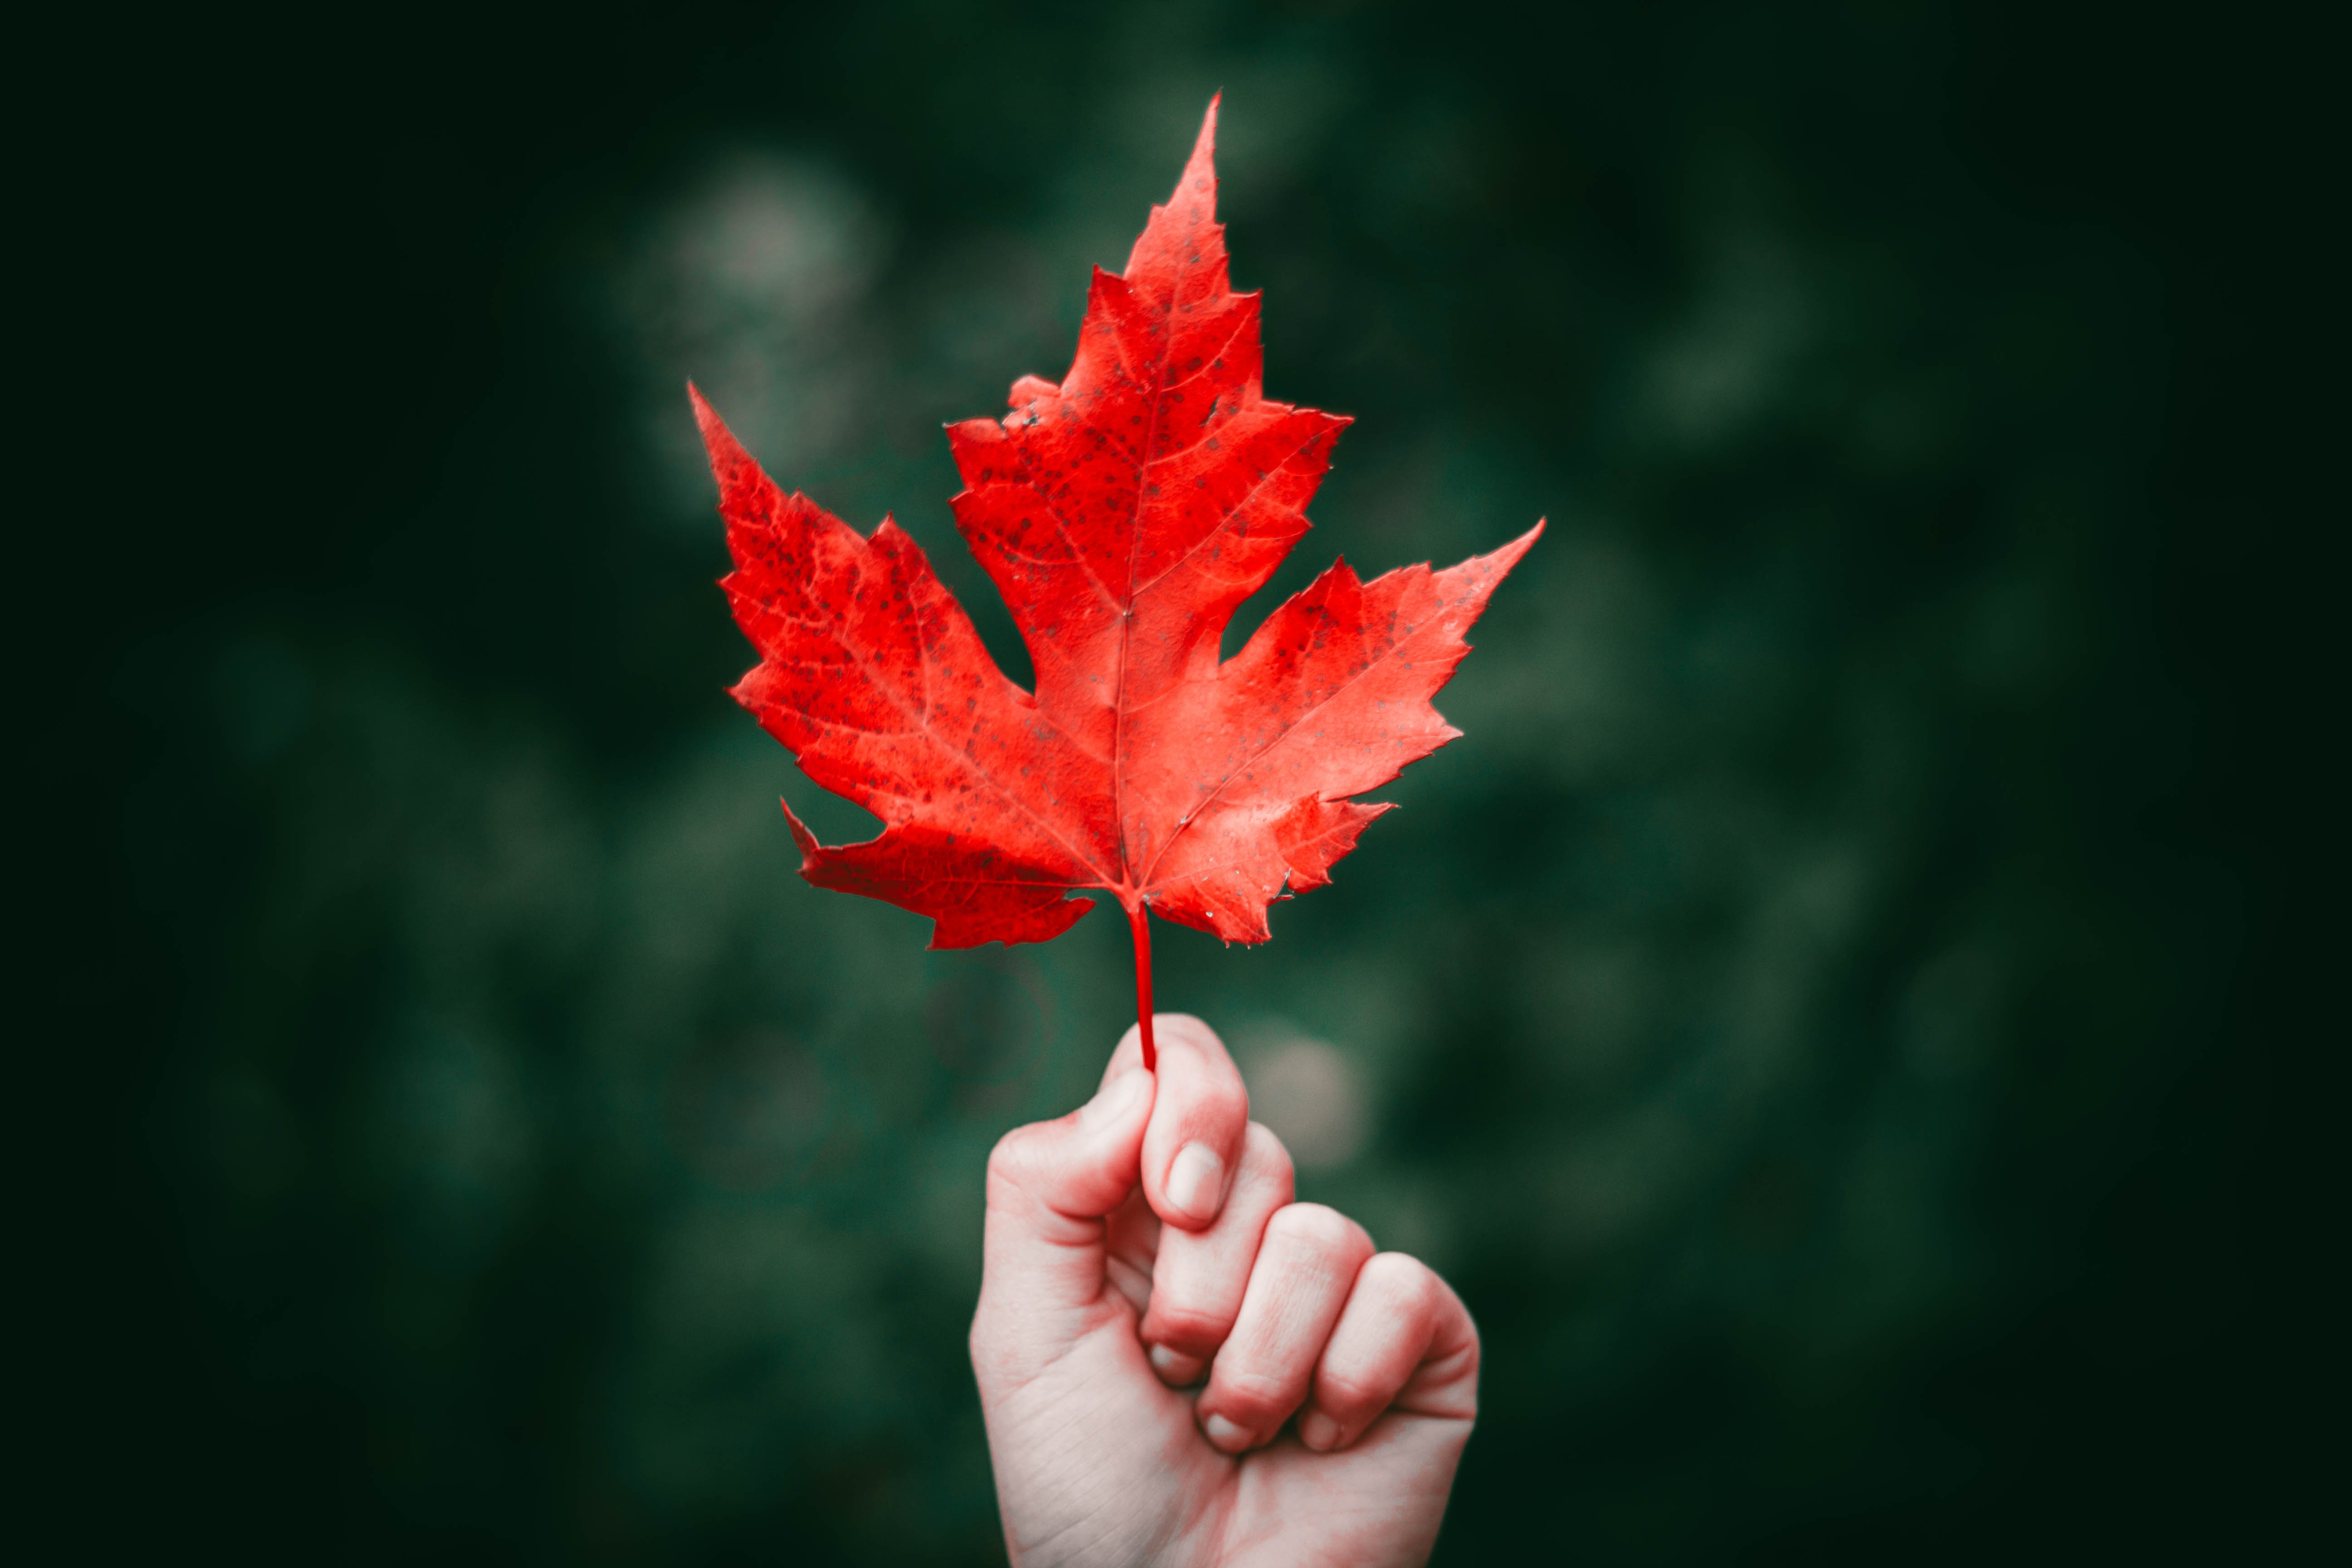 wallpaper, tumblr wallpapers, tumblr backgrounds and backgroundperson holding maple leaf